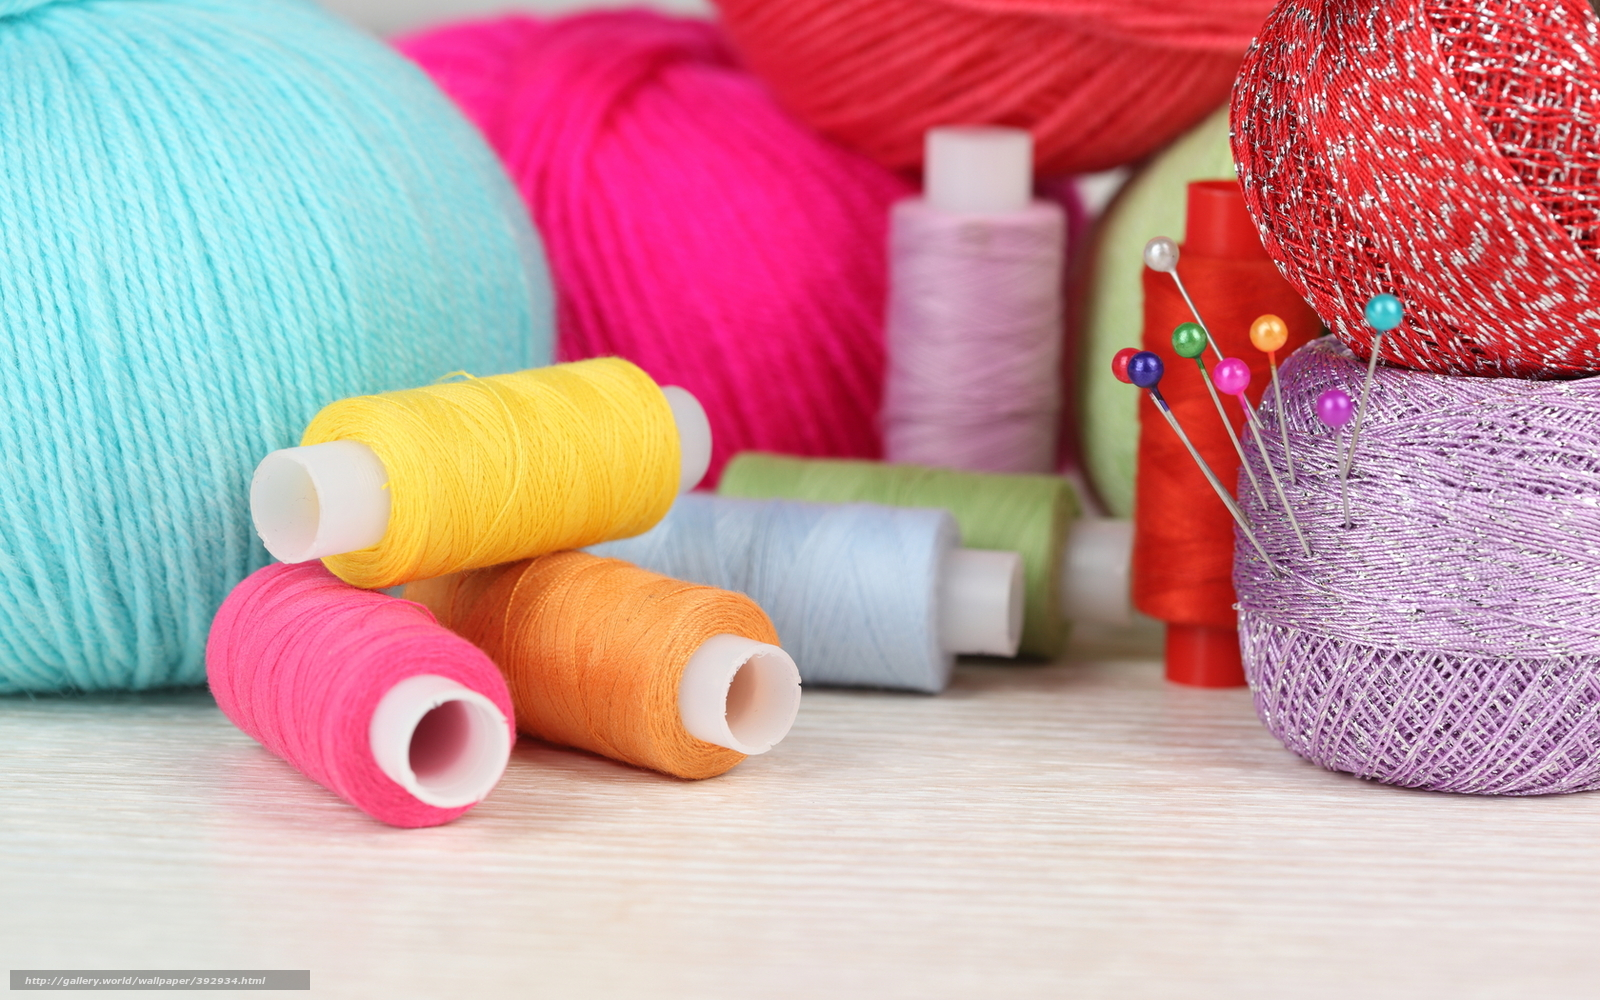 Knitting Desktop Background : Download wallpaper needlework thread knitting sewing free desktop